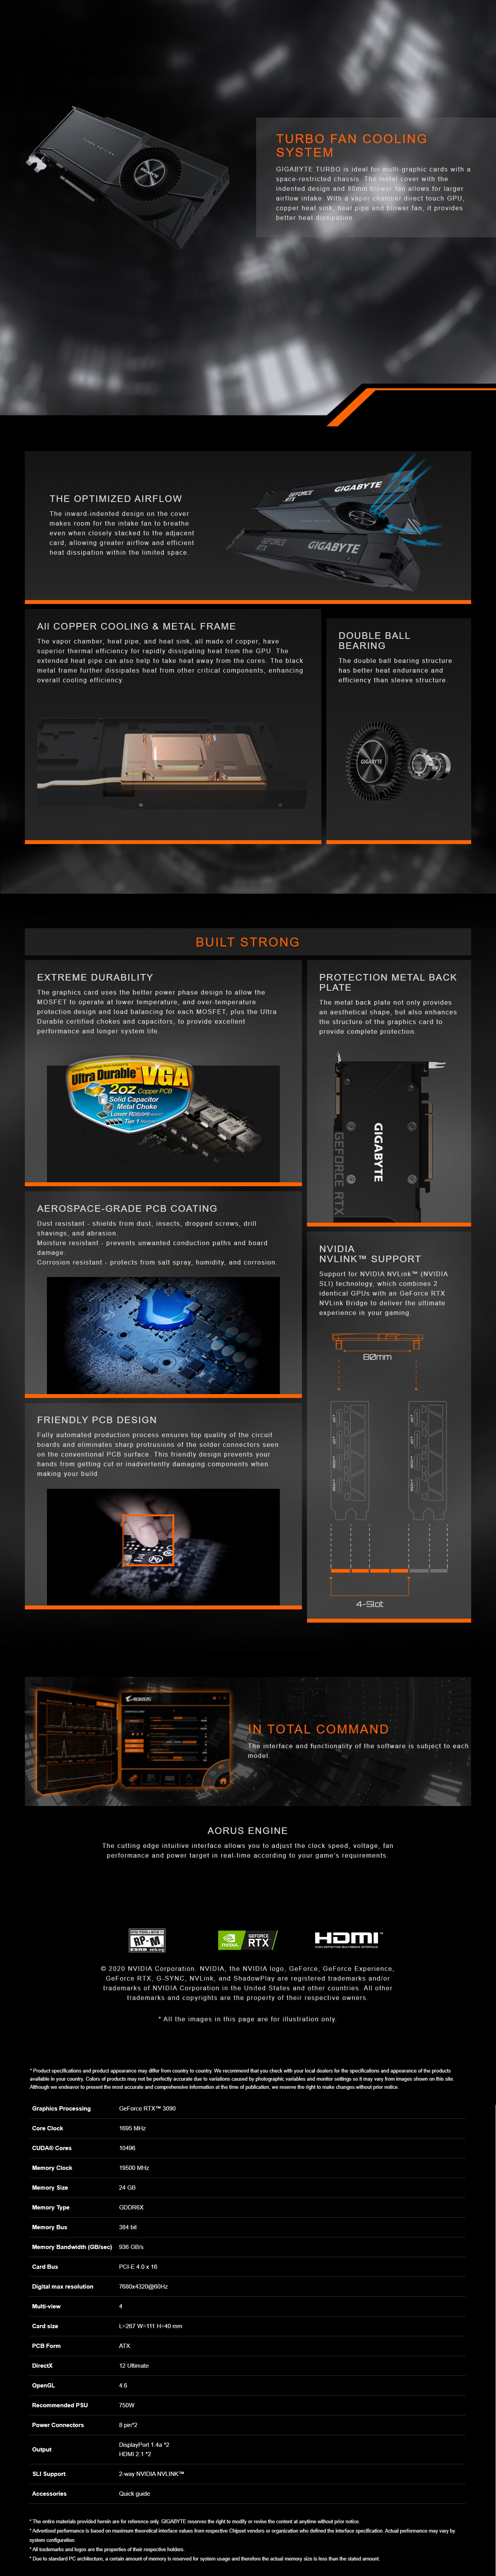 A large marketing image providing additional information about the product Gigabyte GeForce RTX 3090 Turbo 24GB GDDR6X - Additional alt info not provided